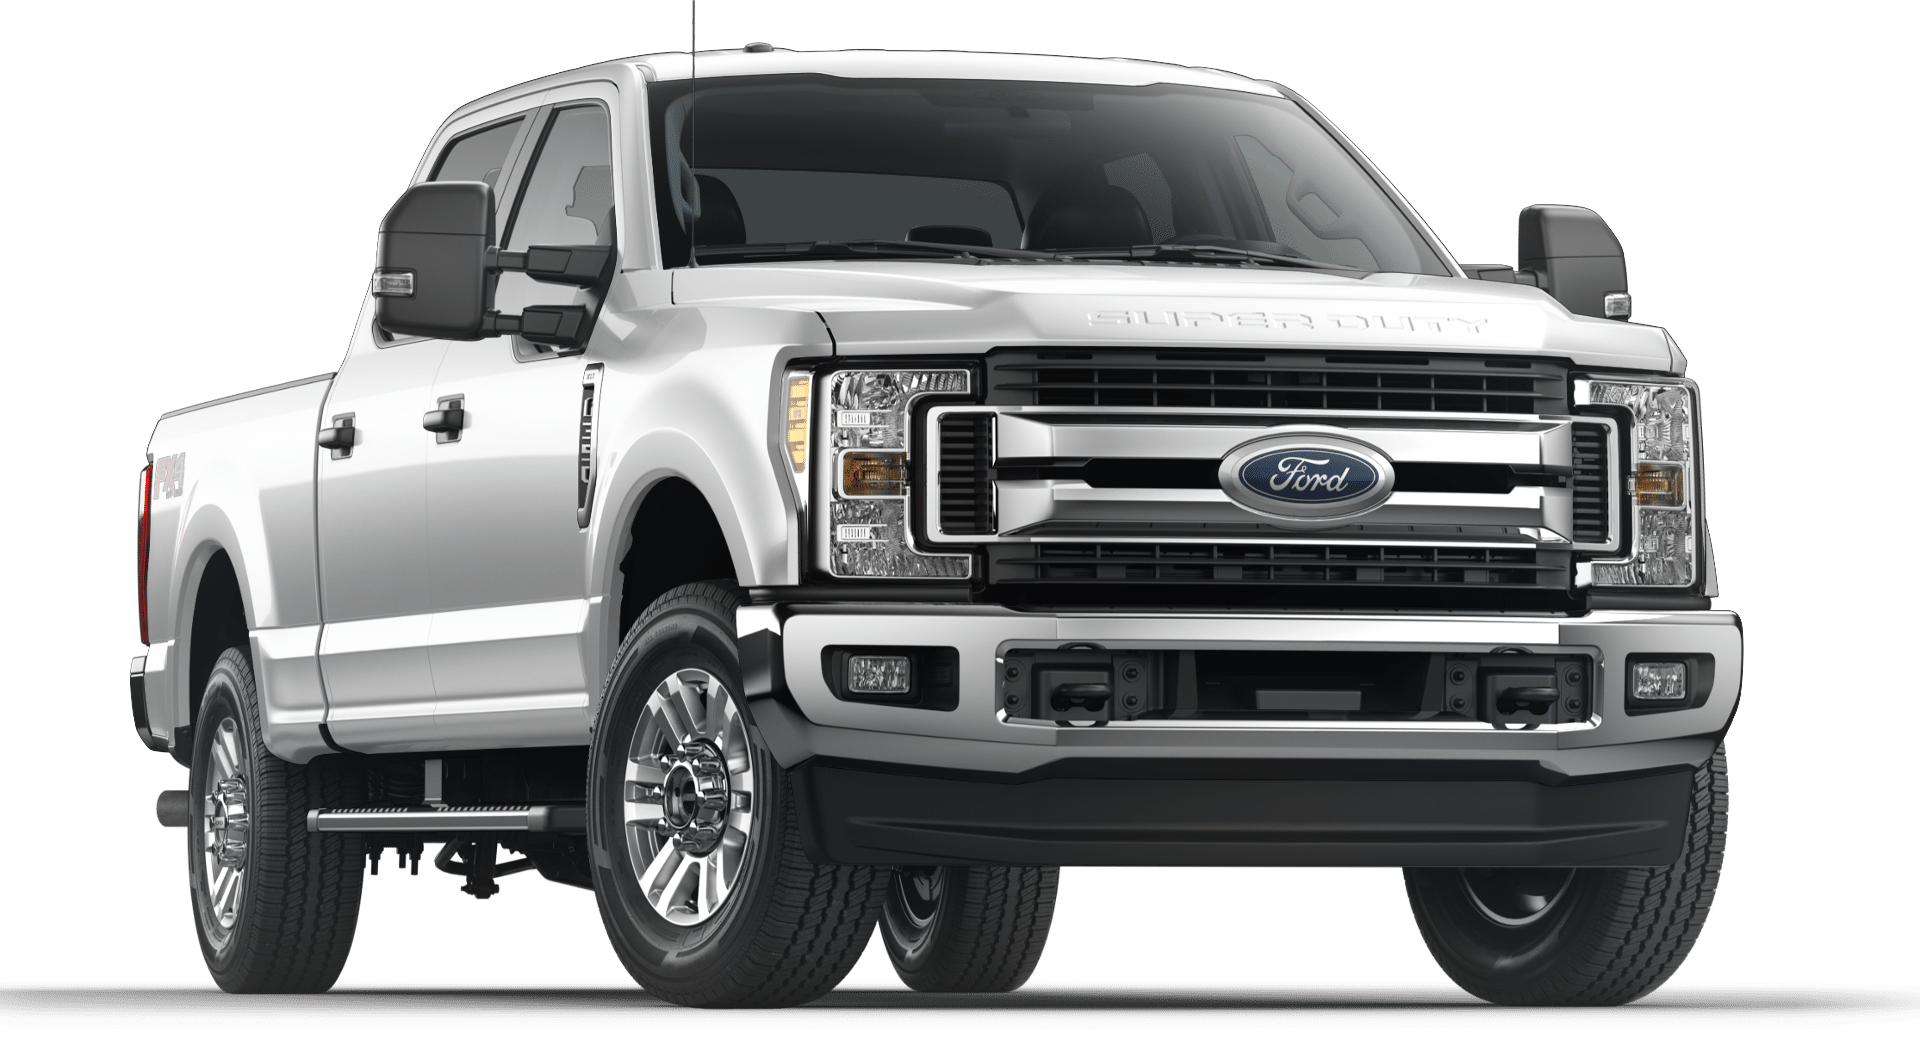 2019 Ford Superduty Build Price Best Pickup Truck Ford Super Duty Hybrid Car